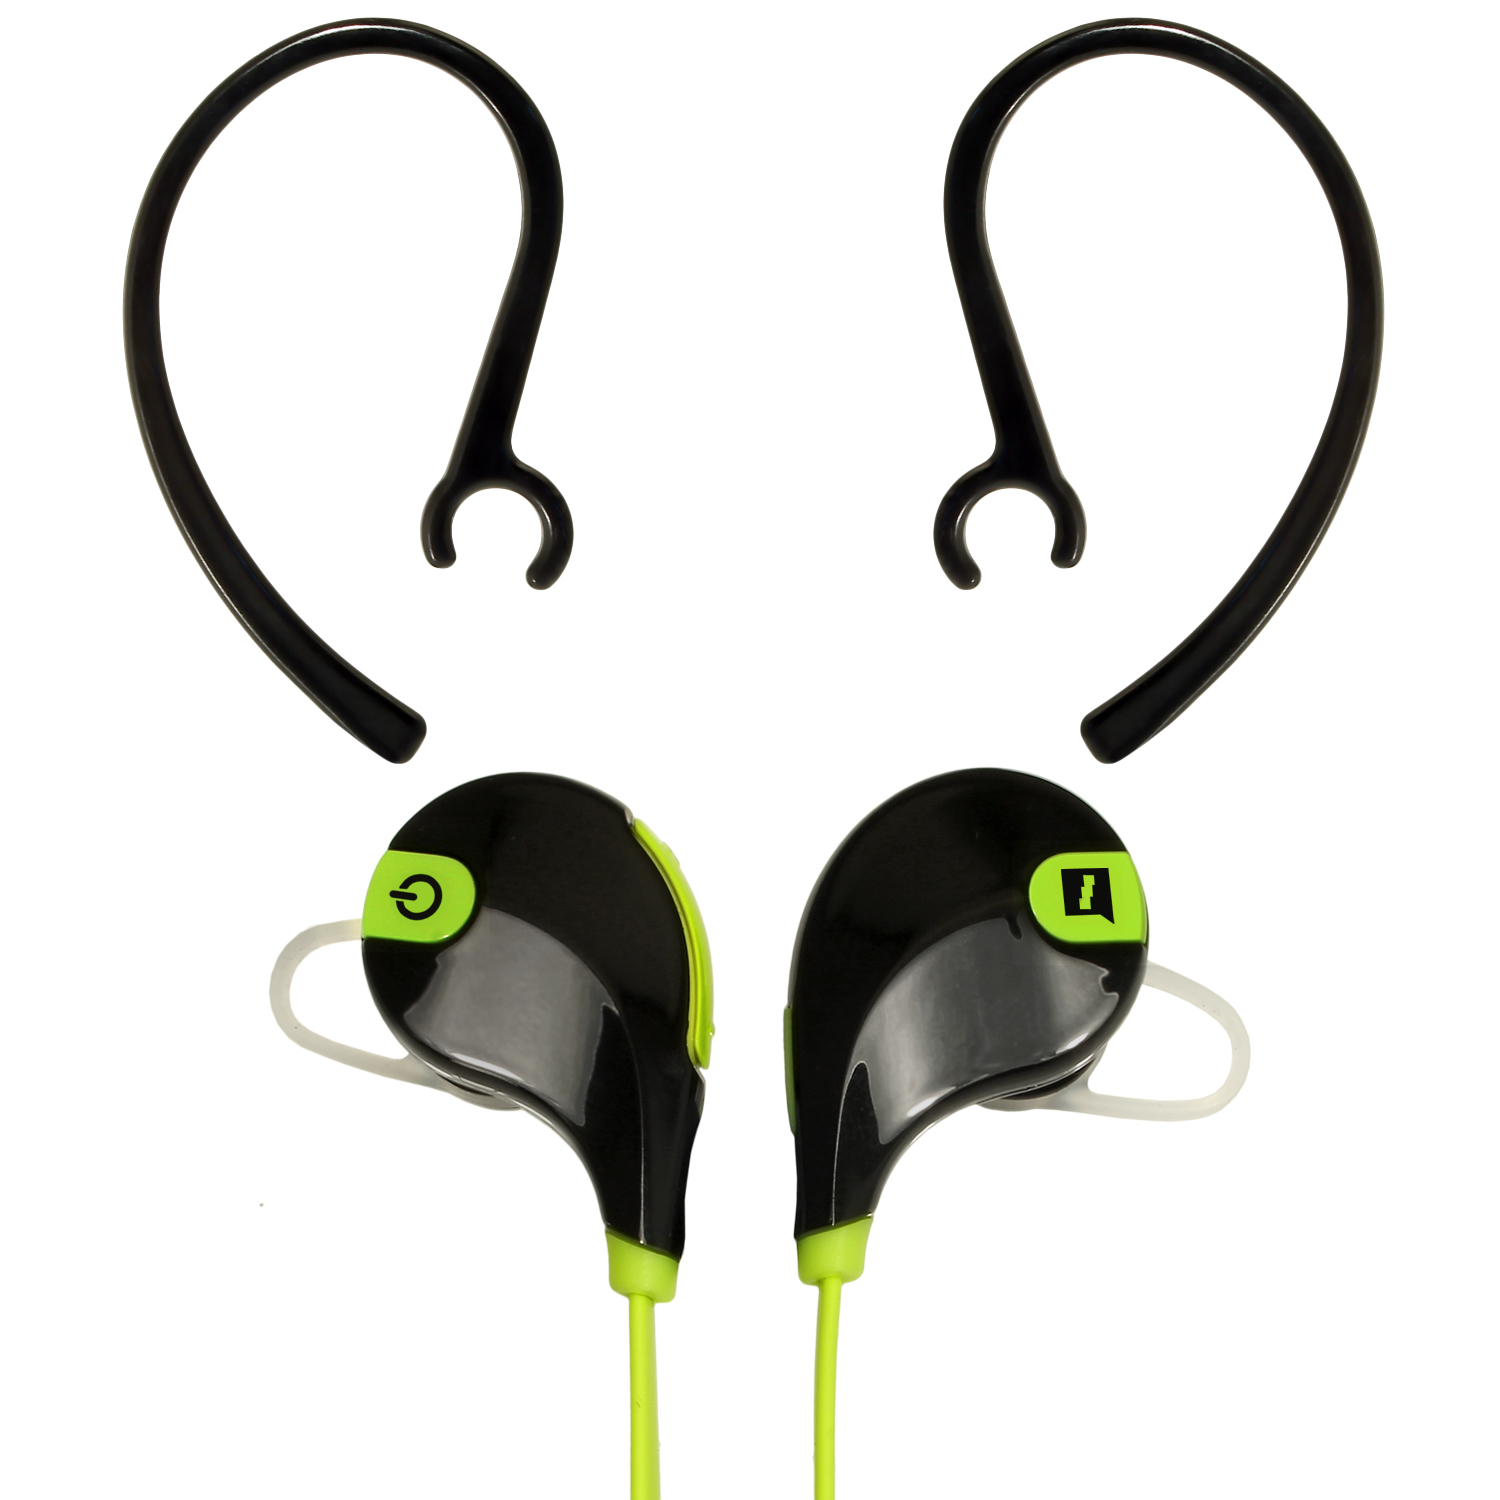 4 0 st r o casque ecouteur sport bluetooth sans fil headset oreillete smartphone ebay. Black Bedroom Furniture Sets. Home Design Ideas